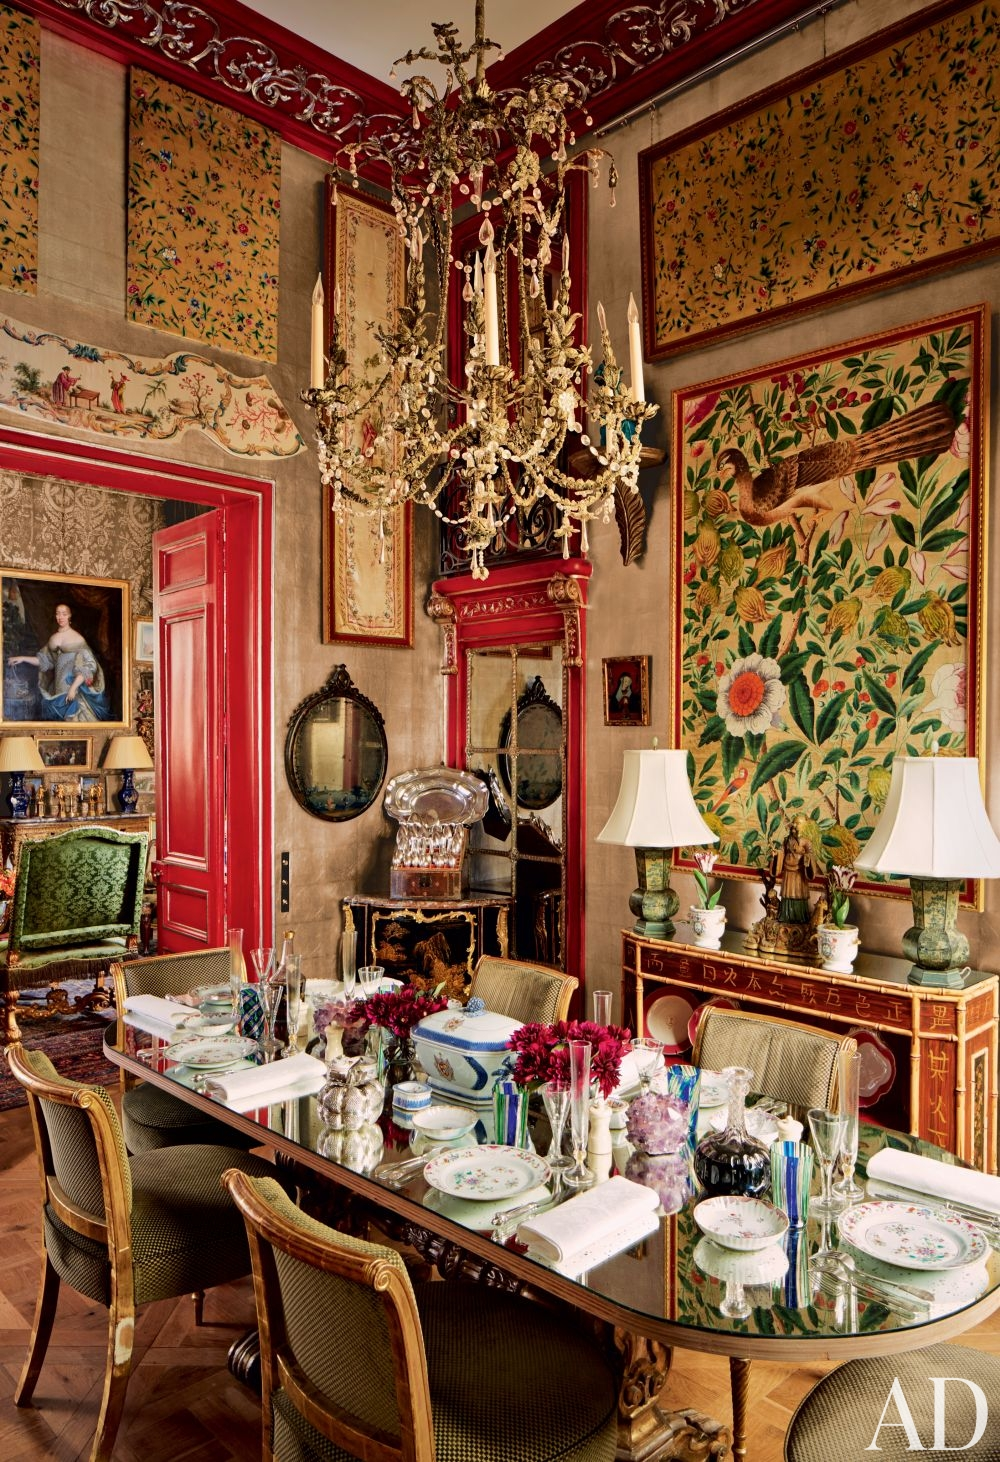 traditional-dining-room-paris-france-201311-2_1000-watermarked